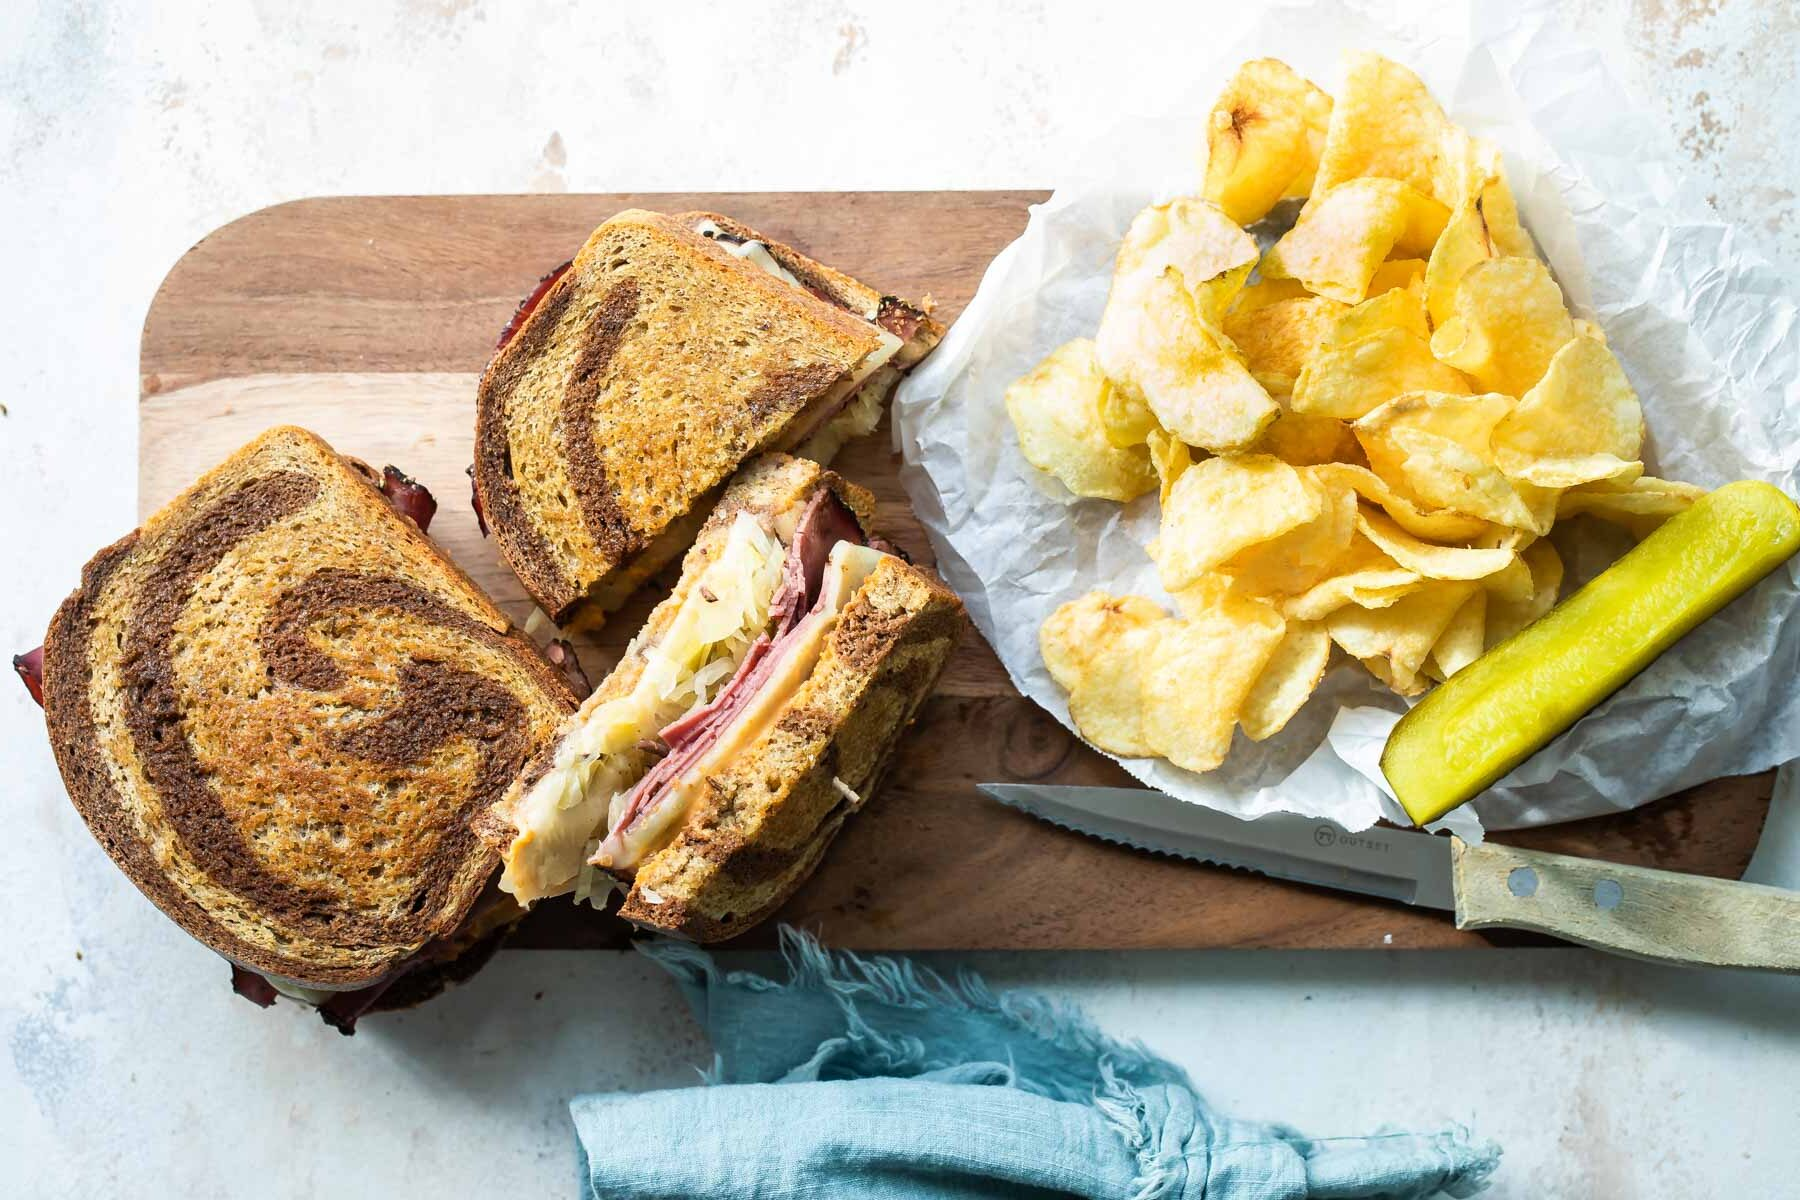 A reuben sandwich on a cutting board surrounded by chips and a pickle spear.